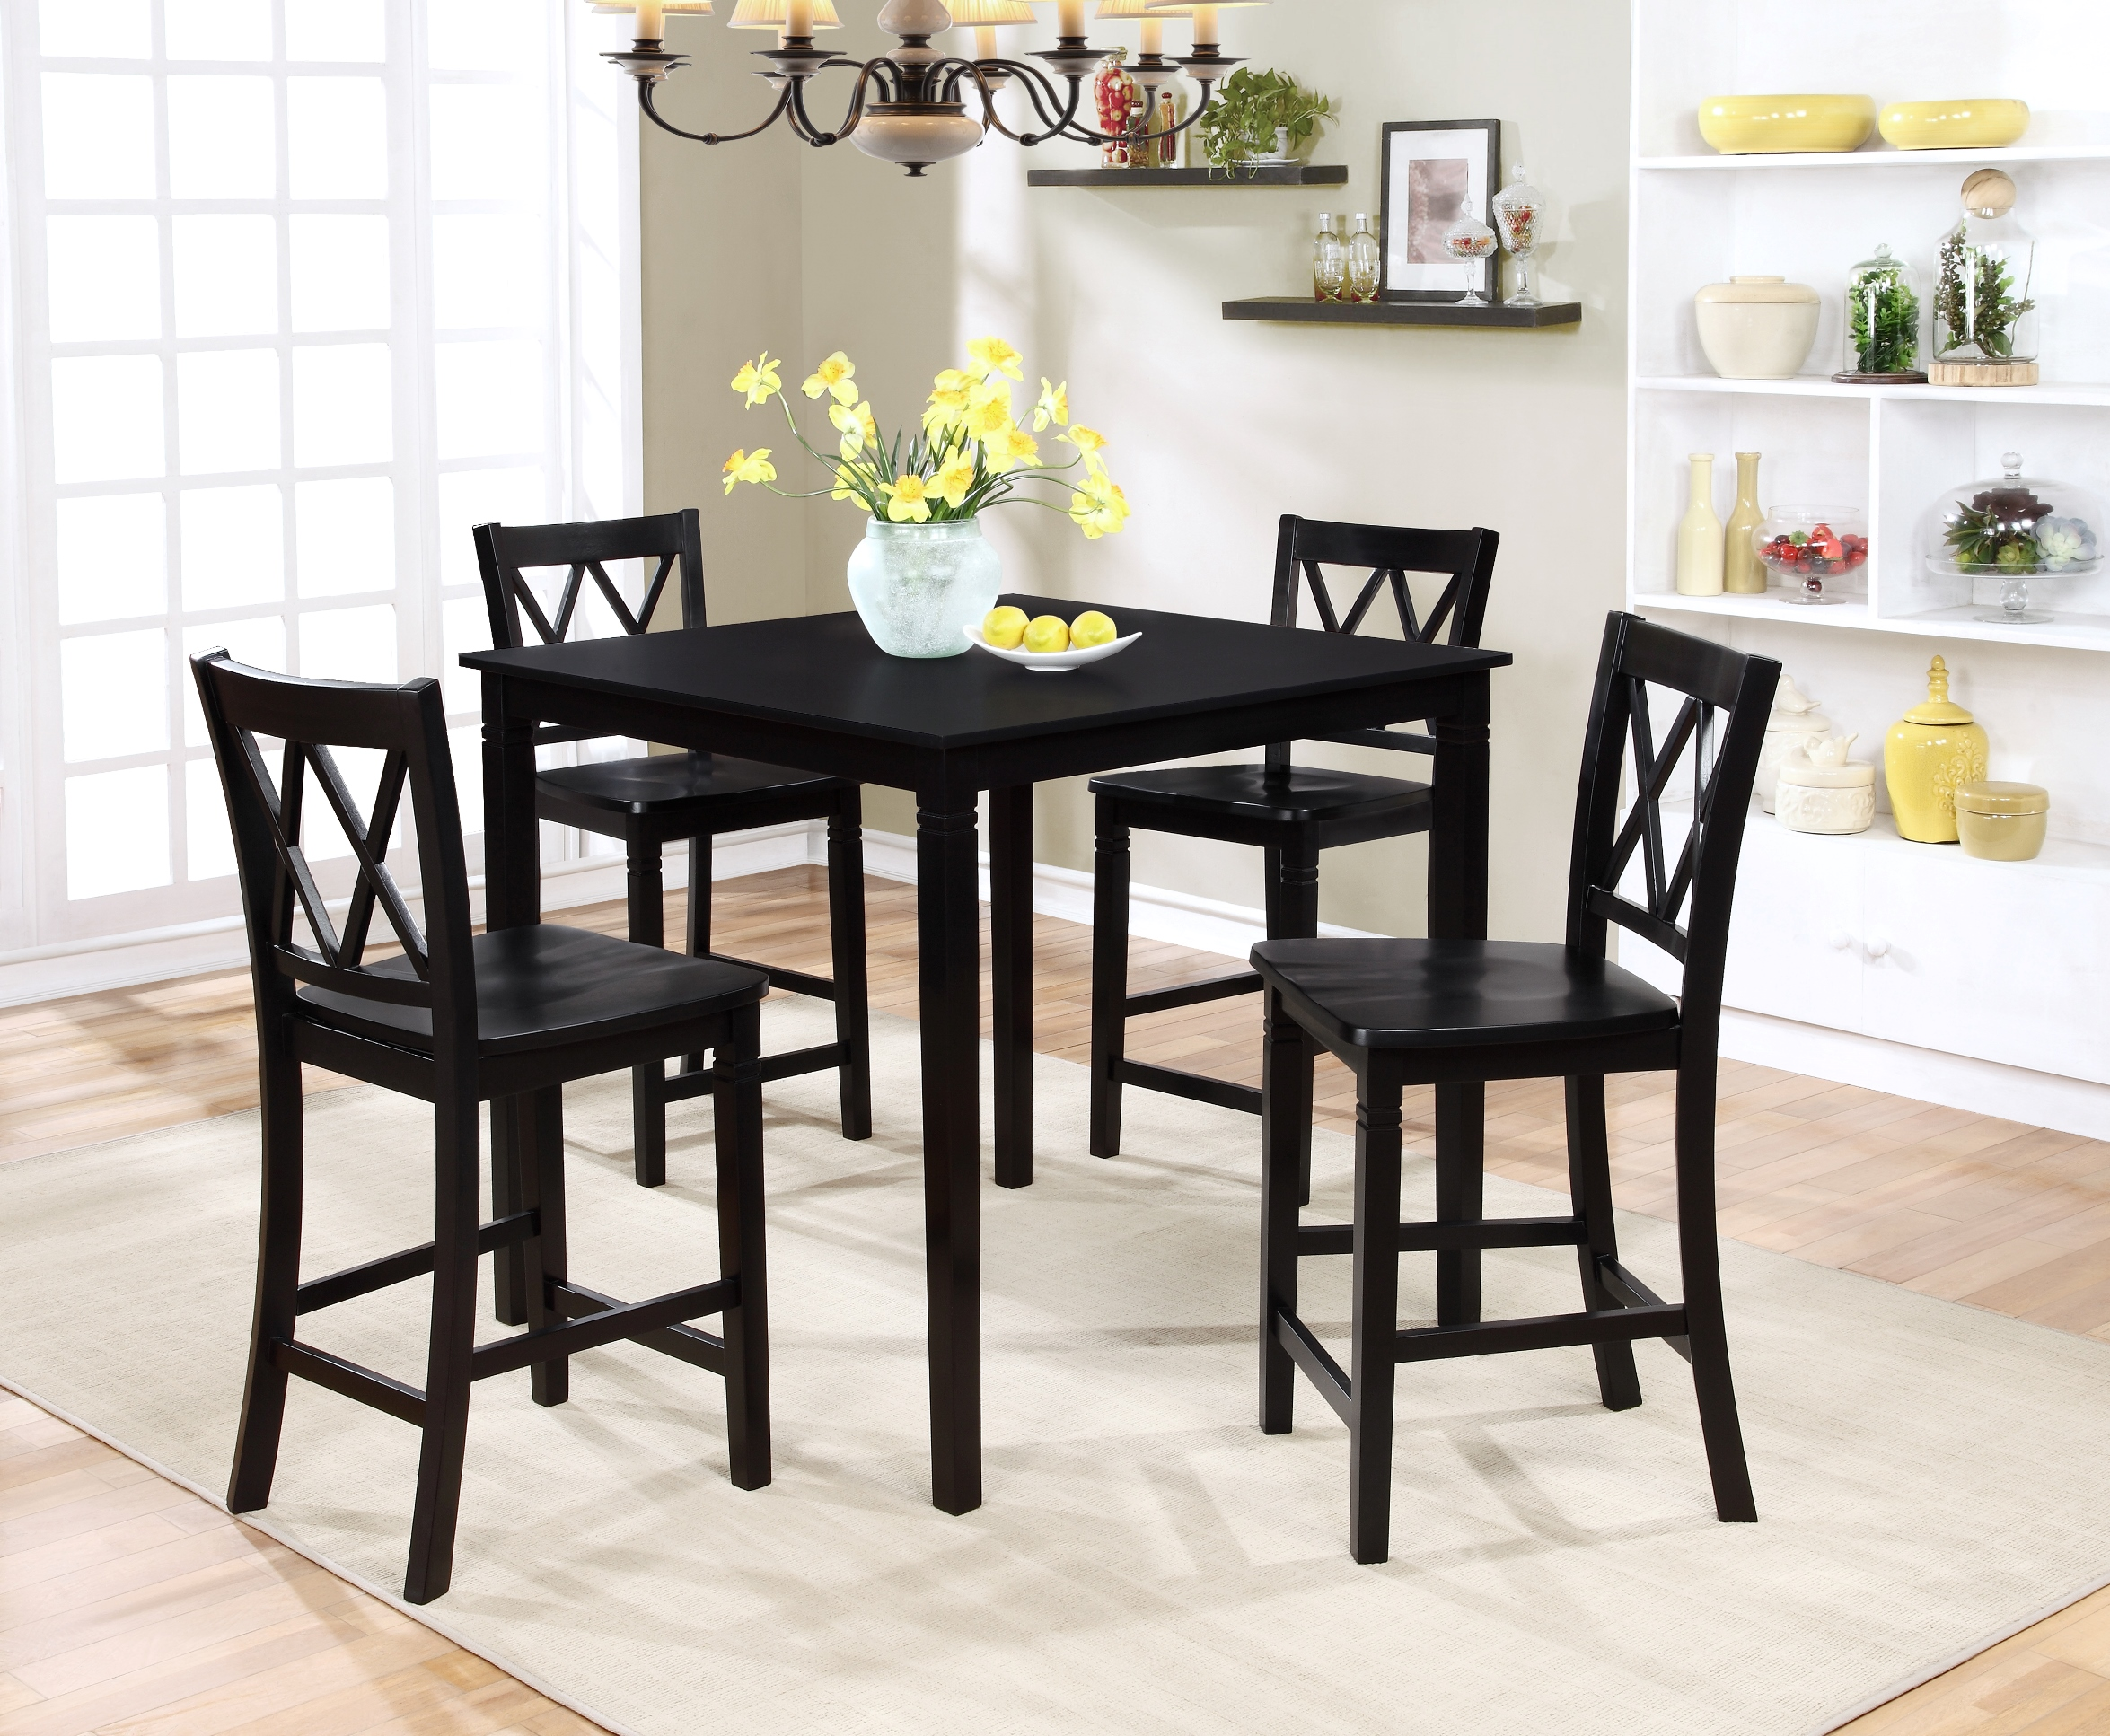 Kmart Deals On Furniture Toys Clothes Tools Tablets Luxury